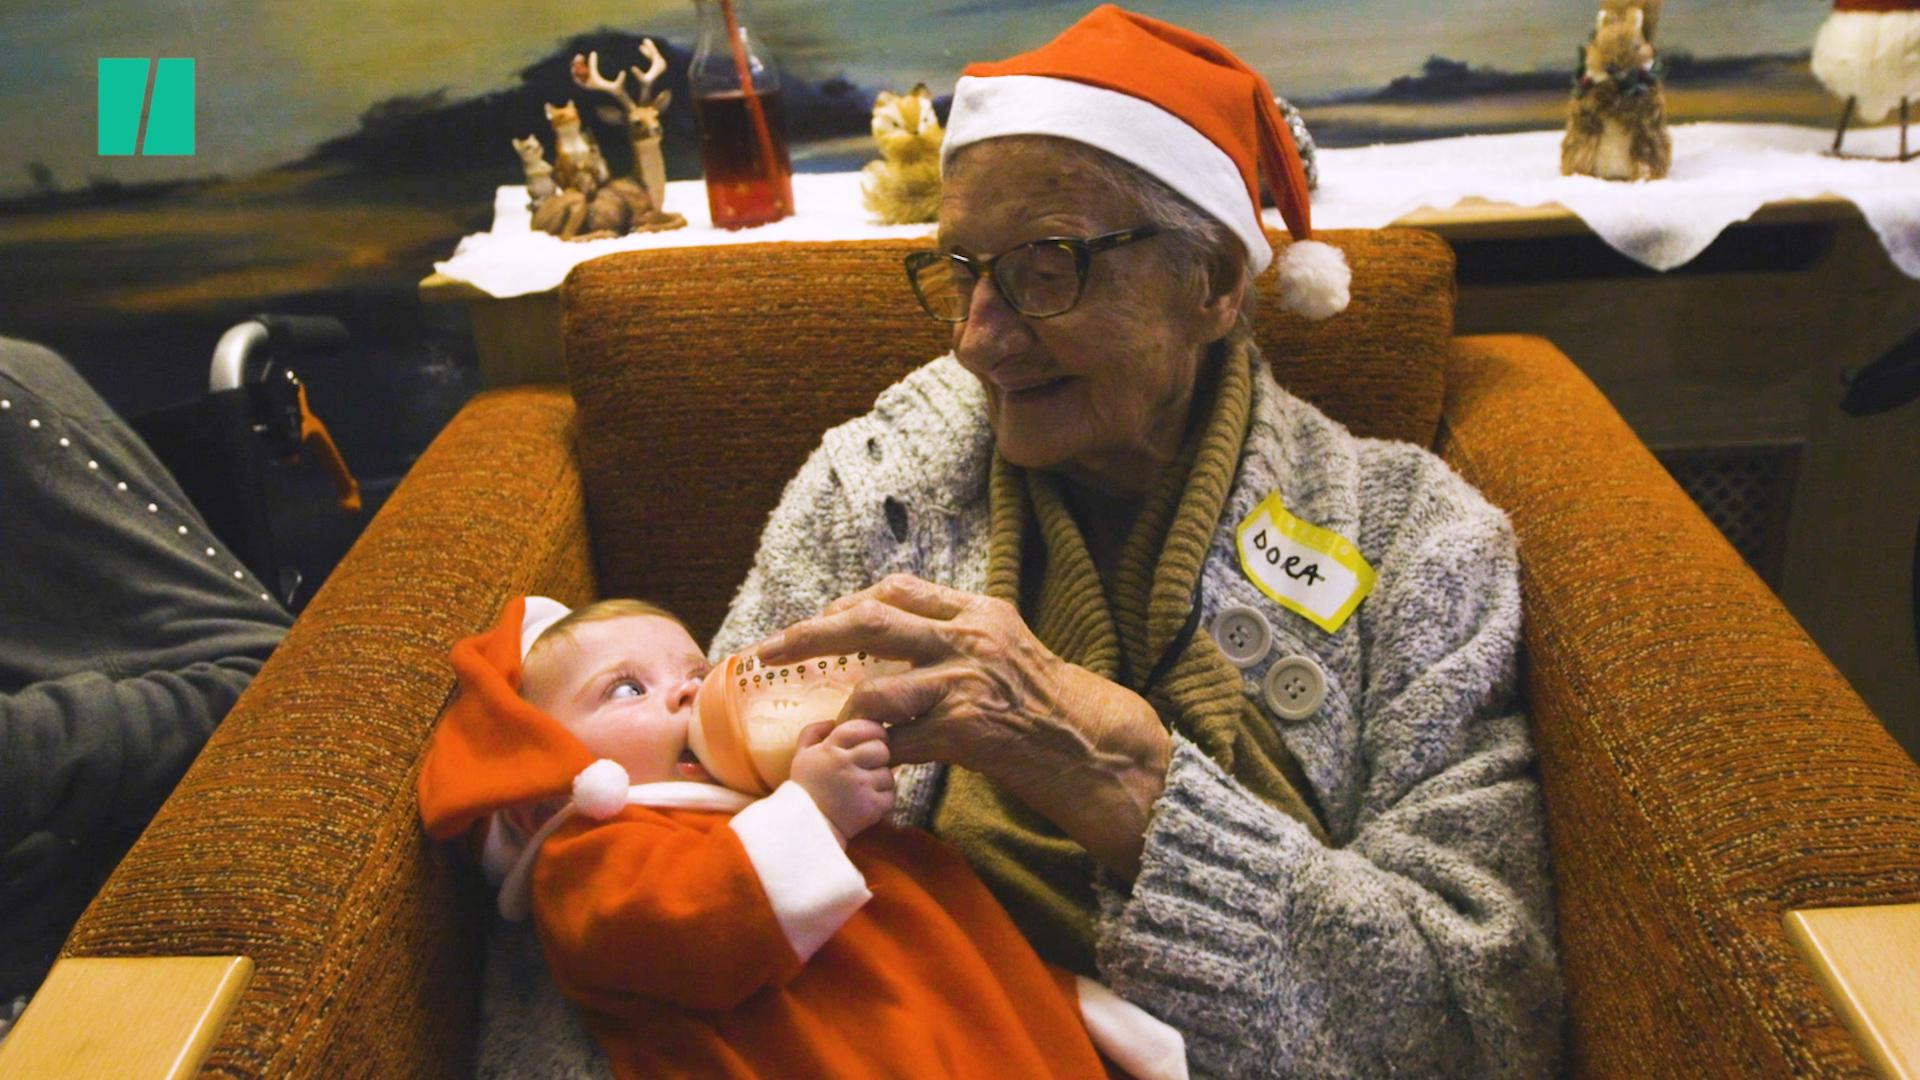 Watch: Toddlers And The Elderly Sing Christmas Songs To Fight Loneliness